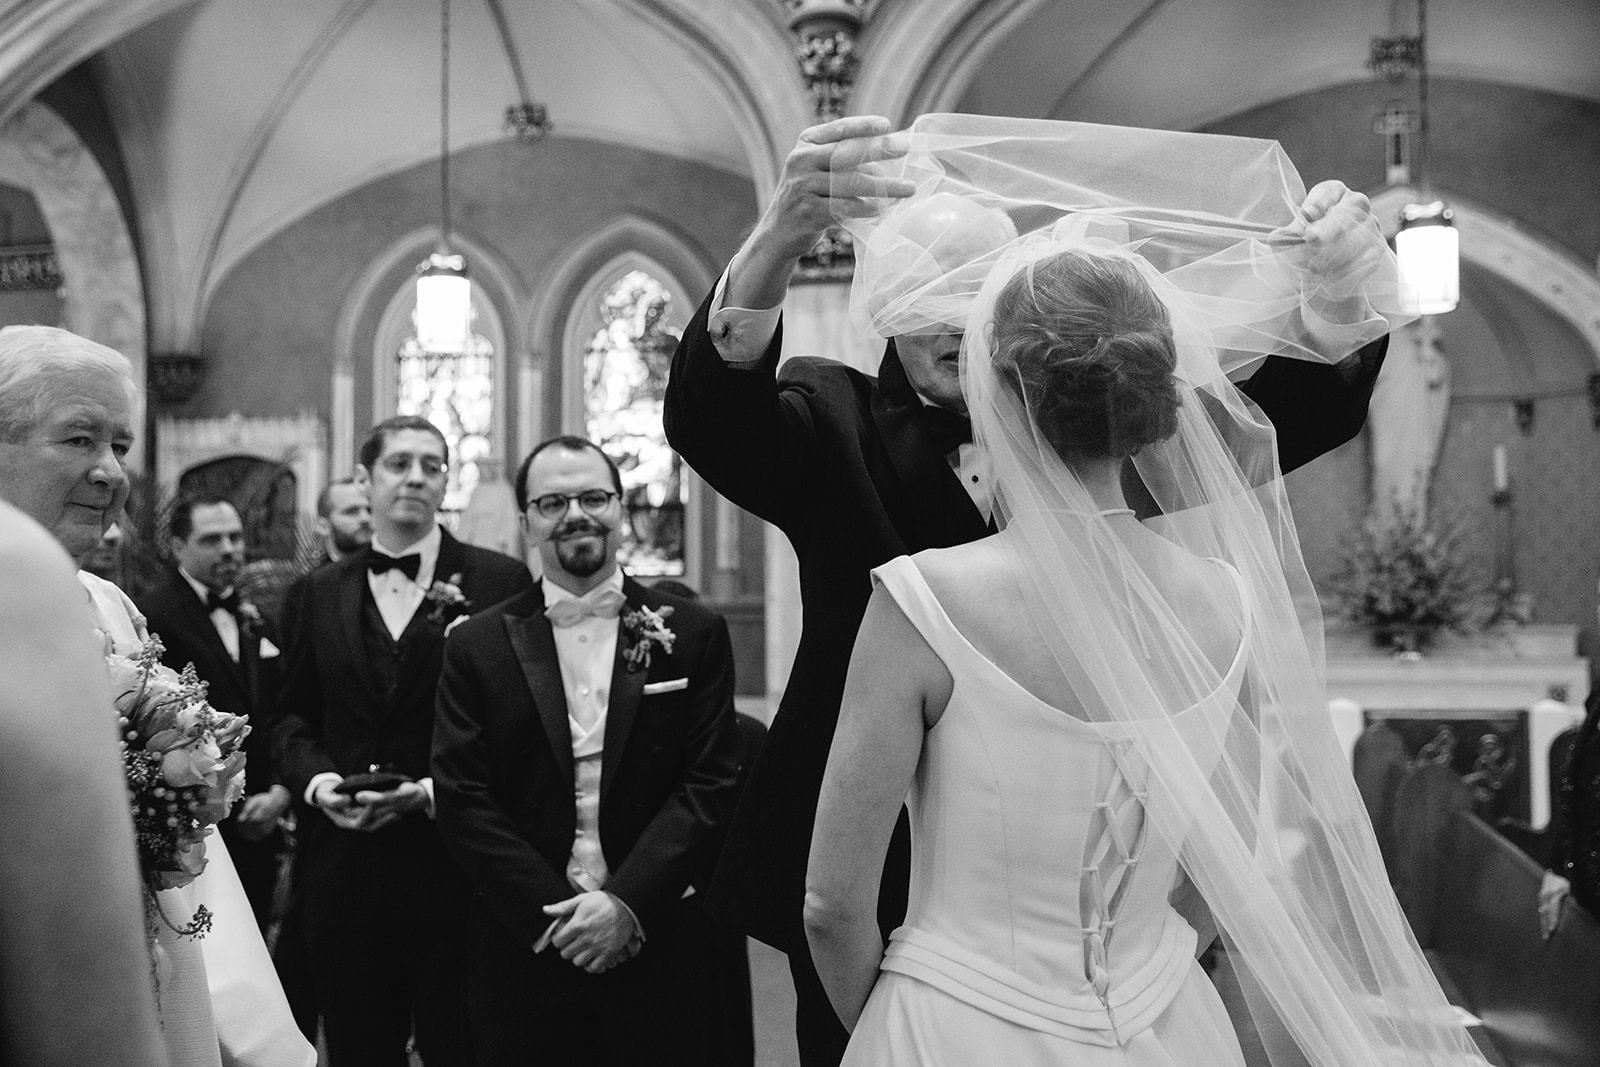 Dad lifting blusher veil over bride's face